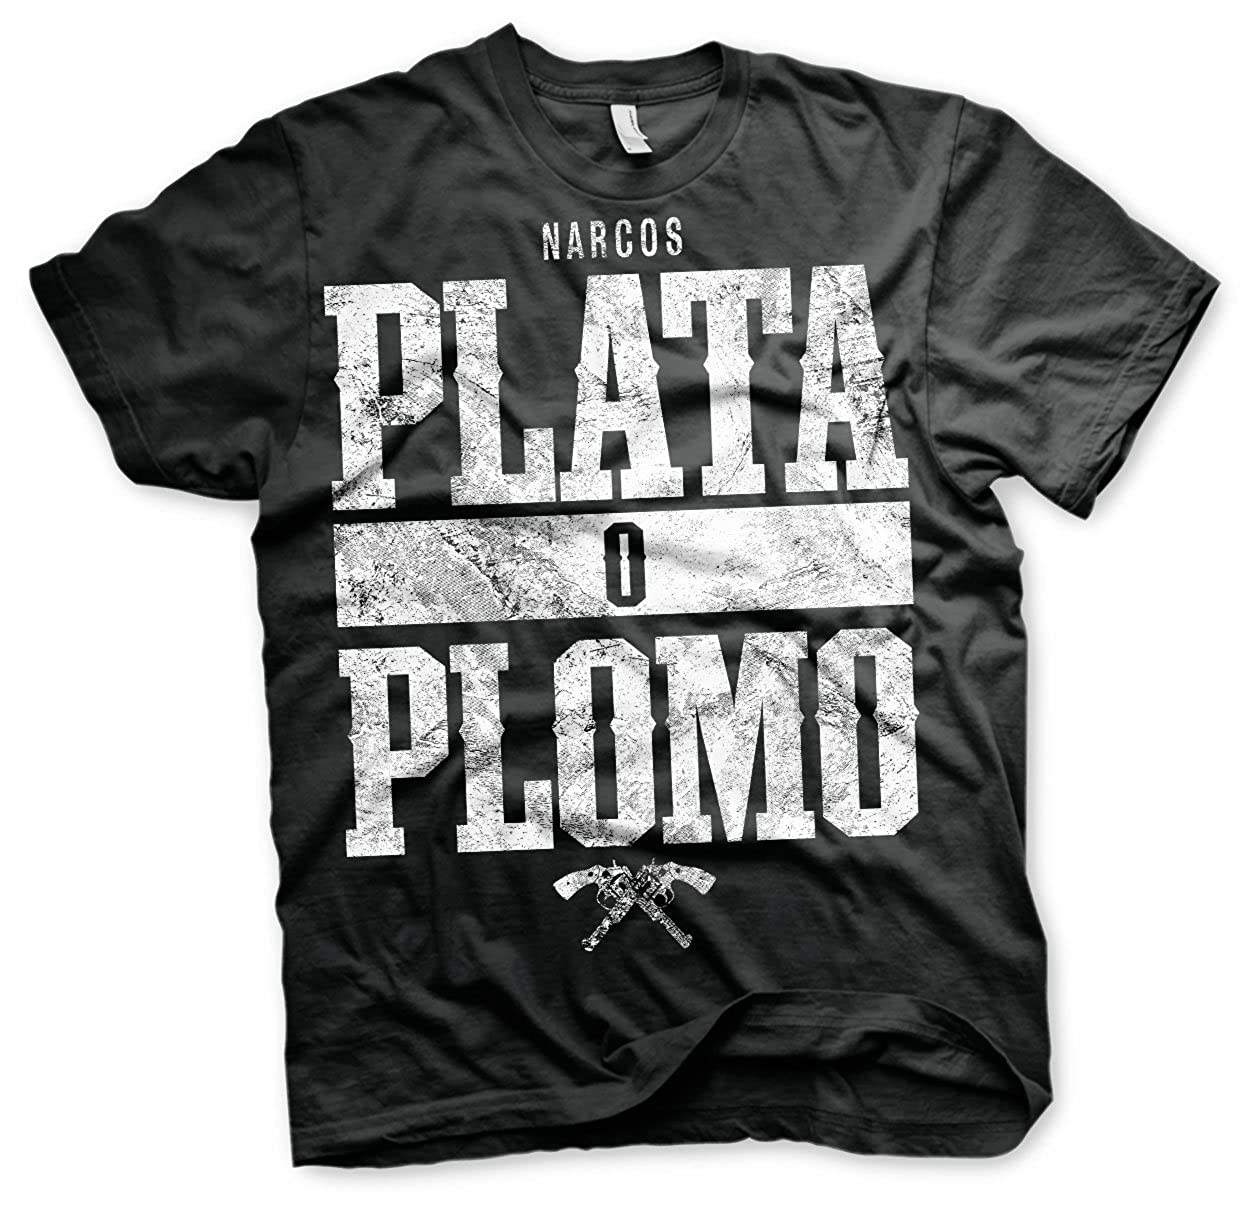 TALLA S. Officially Licensed Merchandise Narcos - Plata o Plomo T-Shirt (Black)